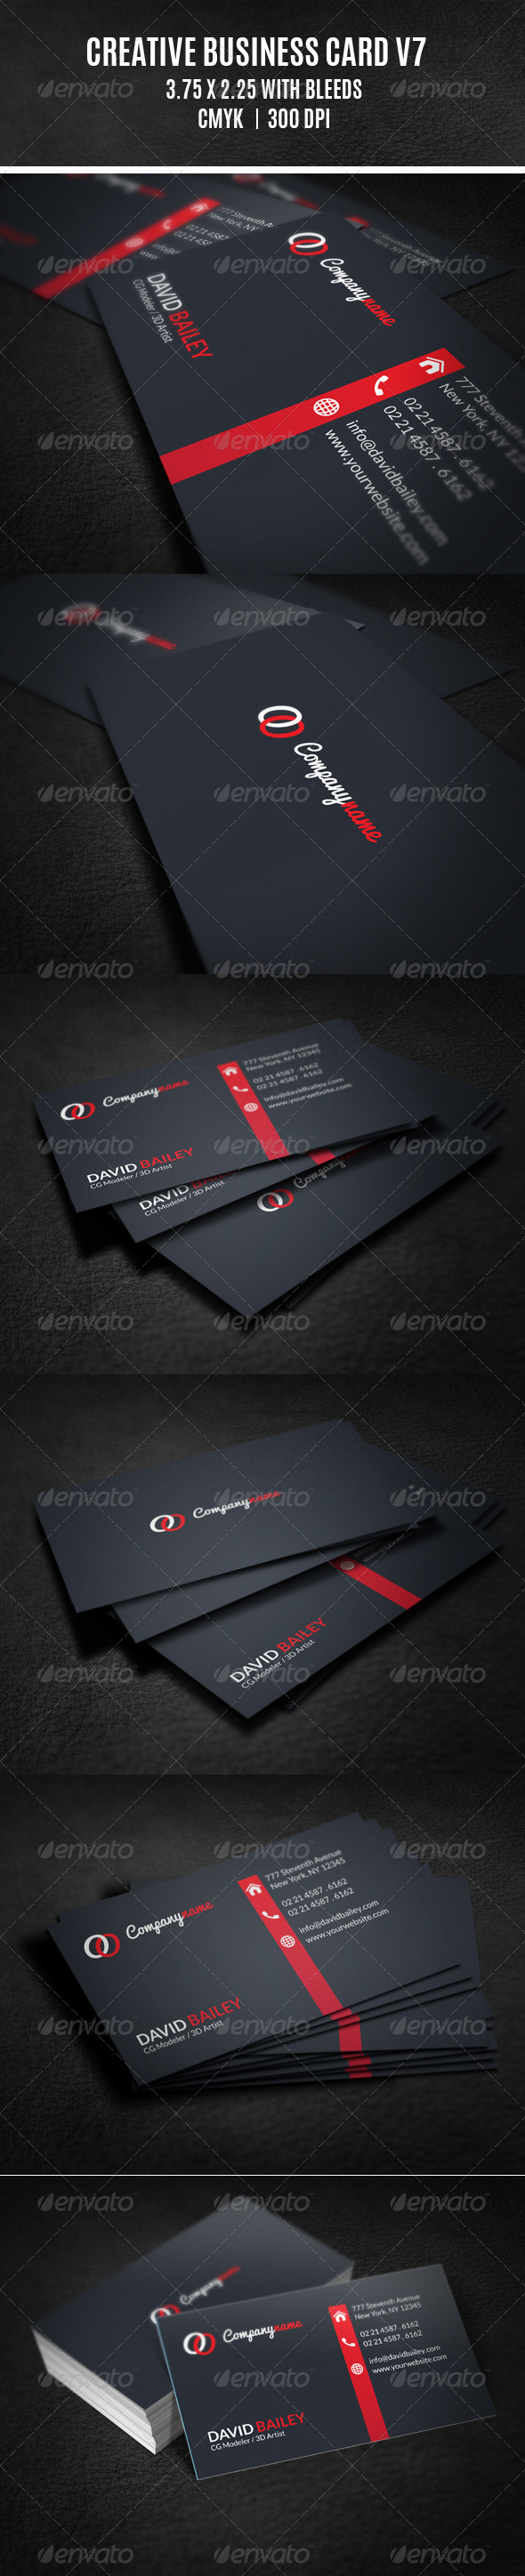 GraphicRiver Creative Business Card V7 8243178